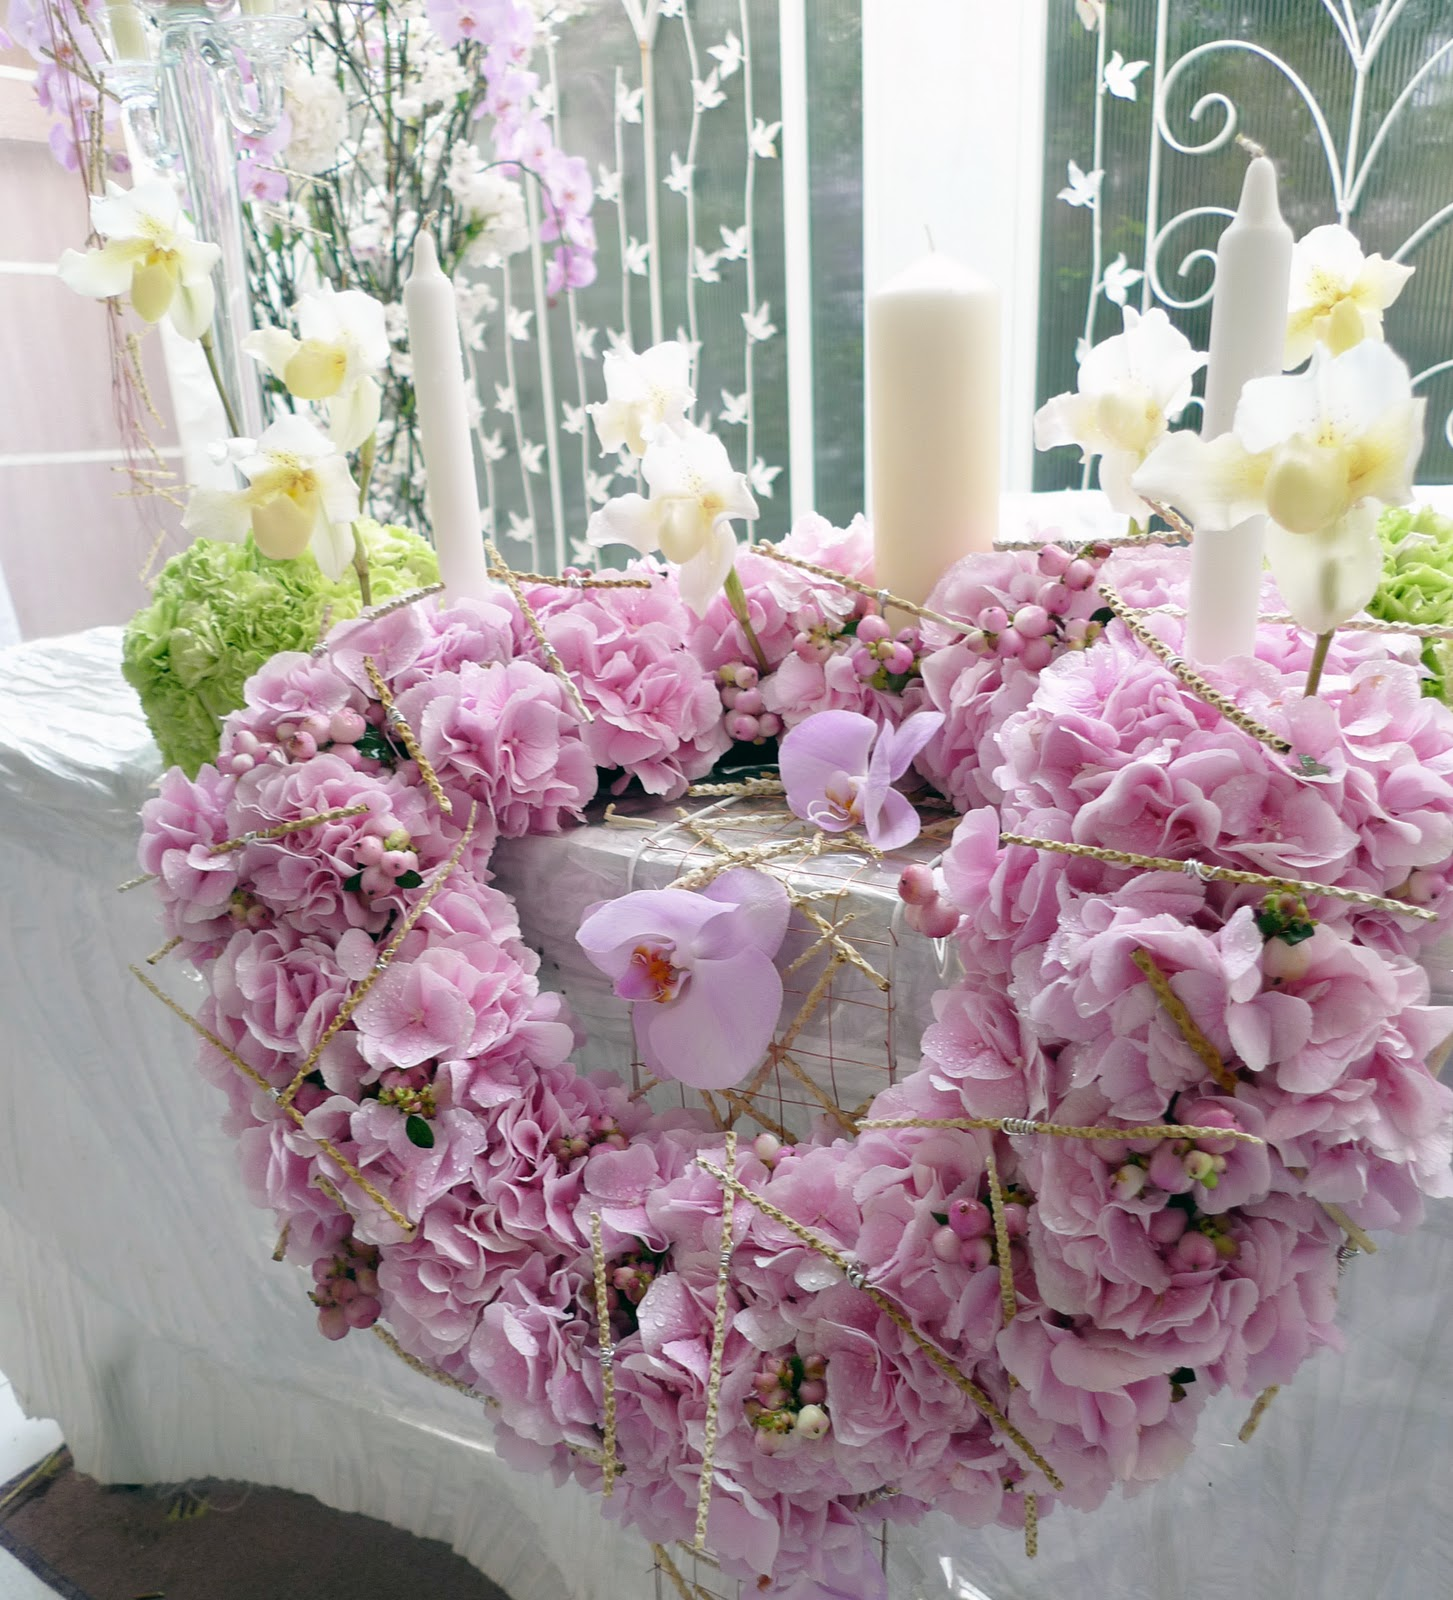 Top five wedding flower decorations - Business Directory Australia